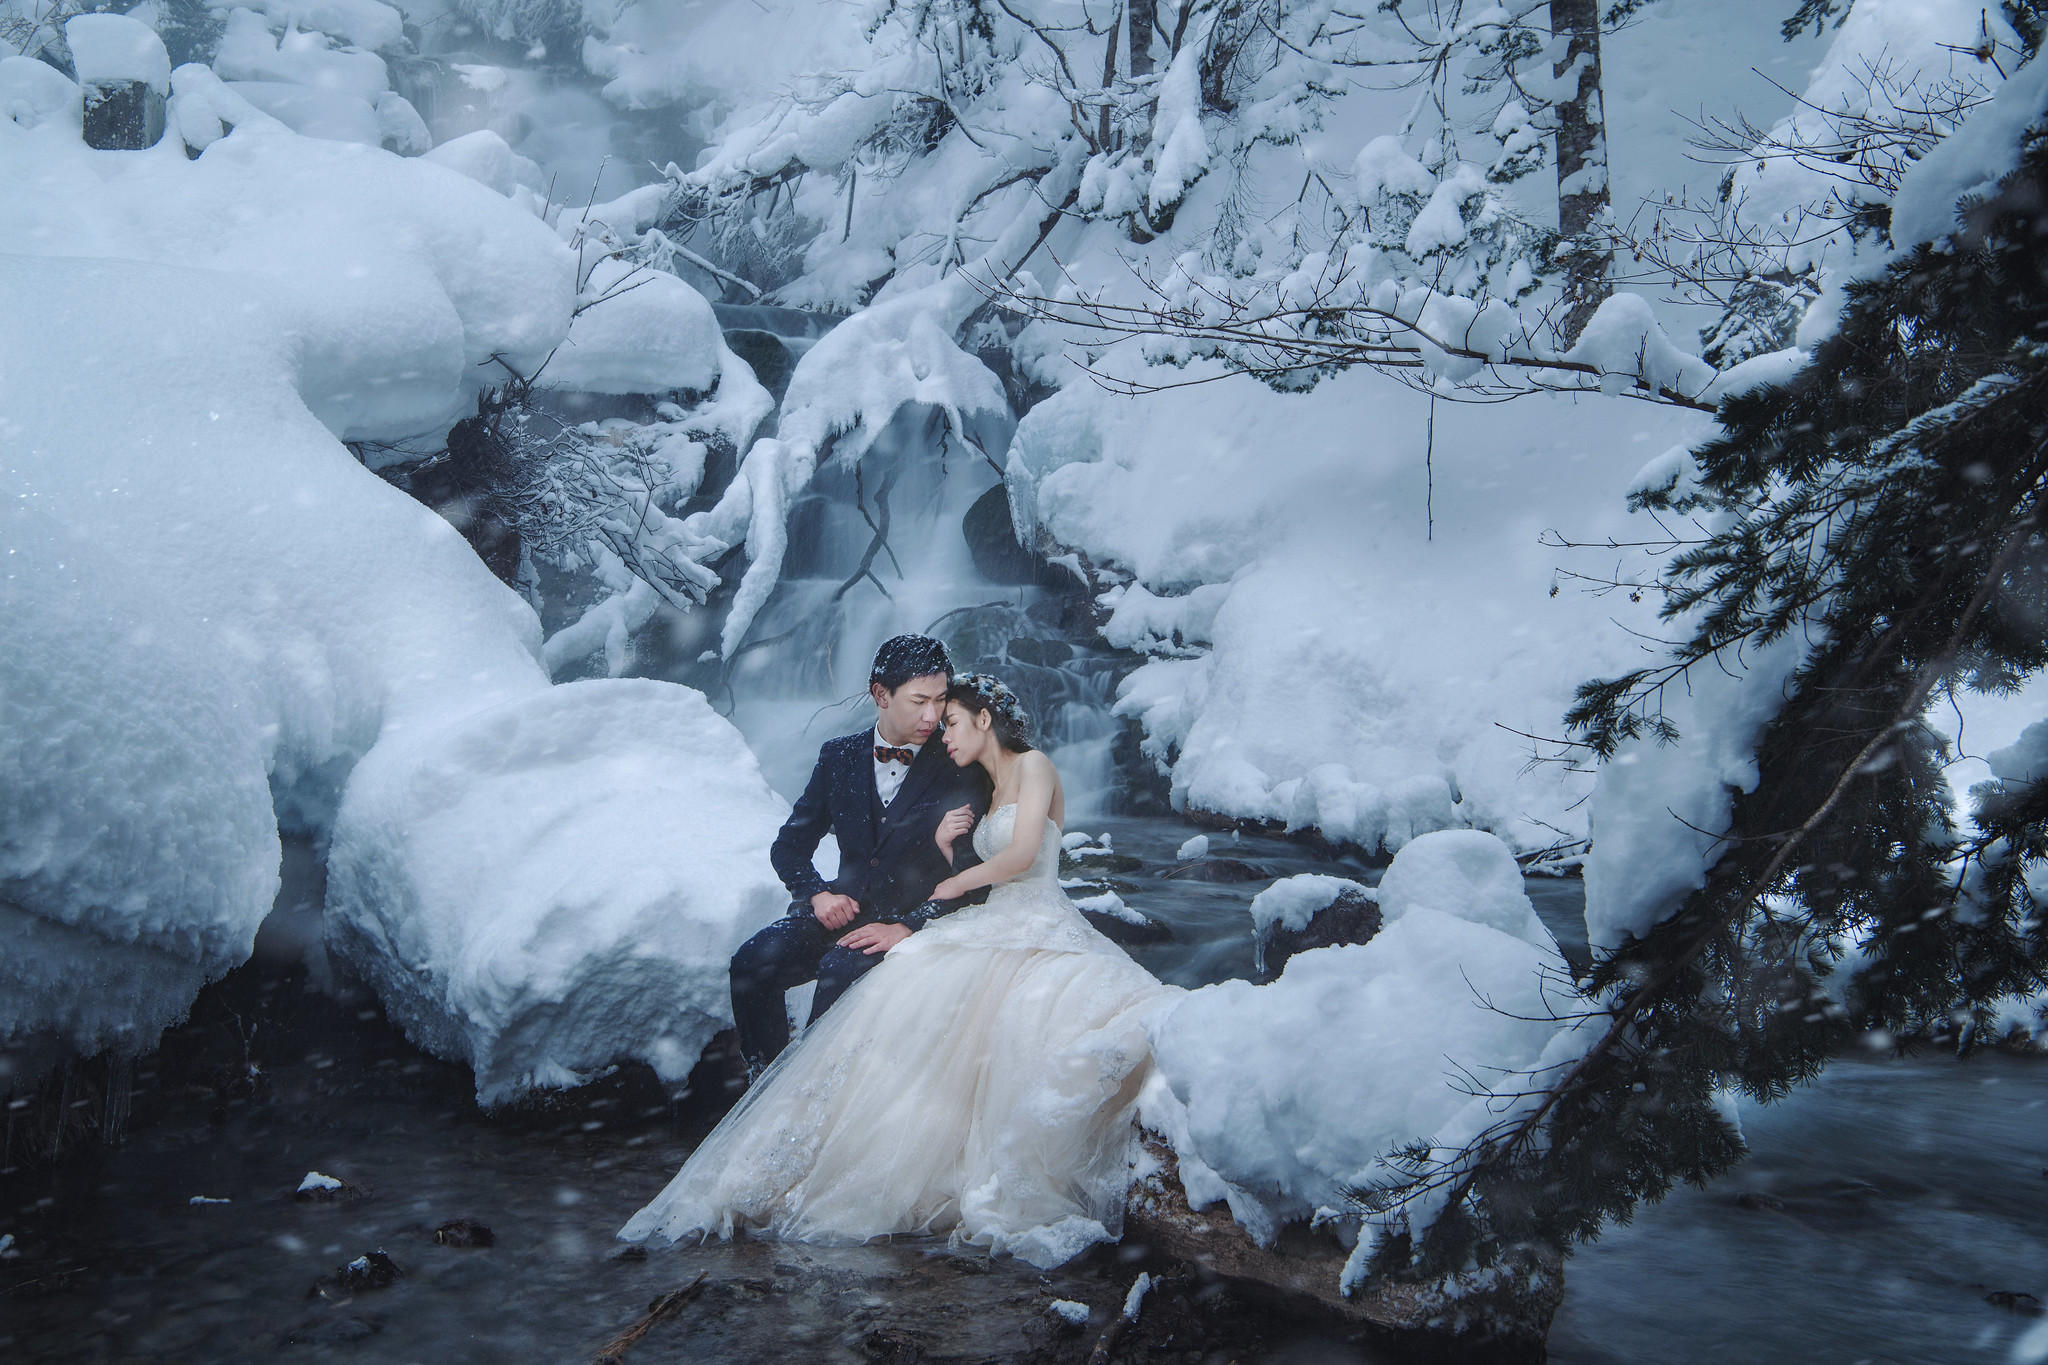 北海道婚紗, 海外婚紗, Donfer Photography, EASTERN WEDDING, 東法, 美瑛婚紗, 雪景婚紗, 藝術婚紗